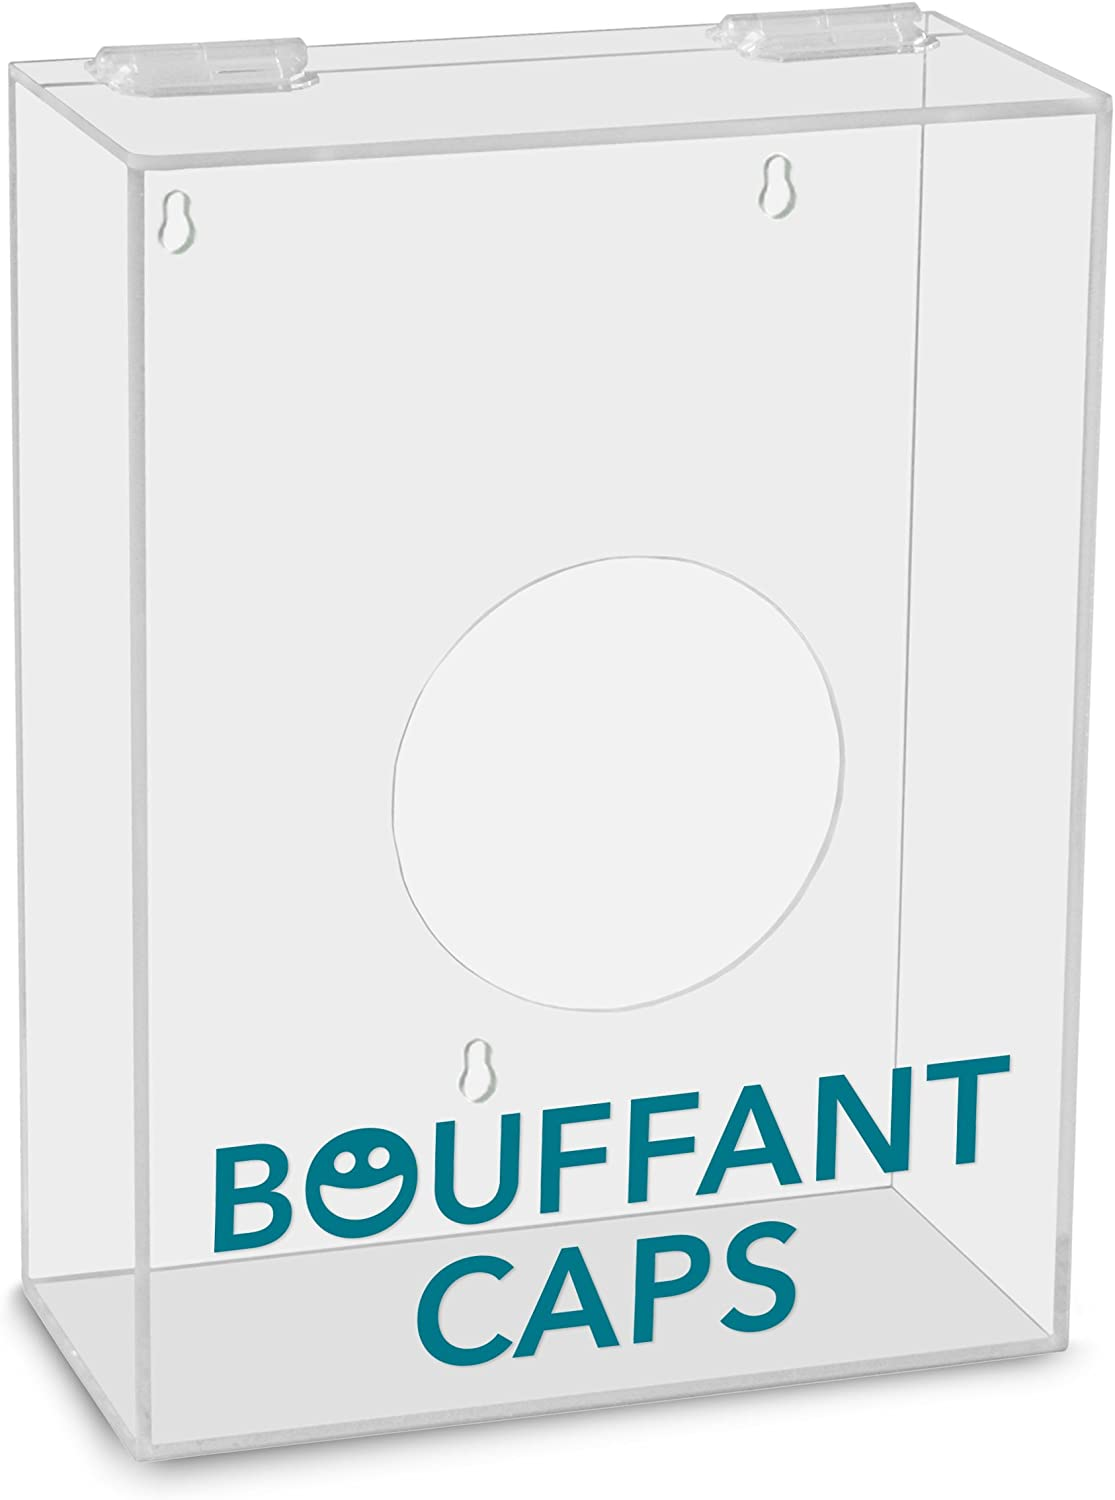 TrippNT 51312 Bouffant Caps Labeled Small Apparel Dispenser, 9-Inch Width x 12-Inch Height x 4-Inch Depth